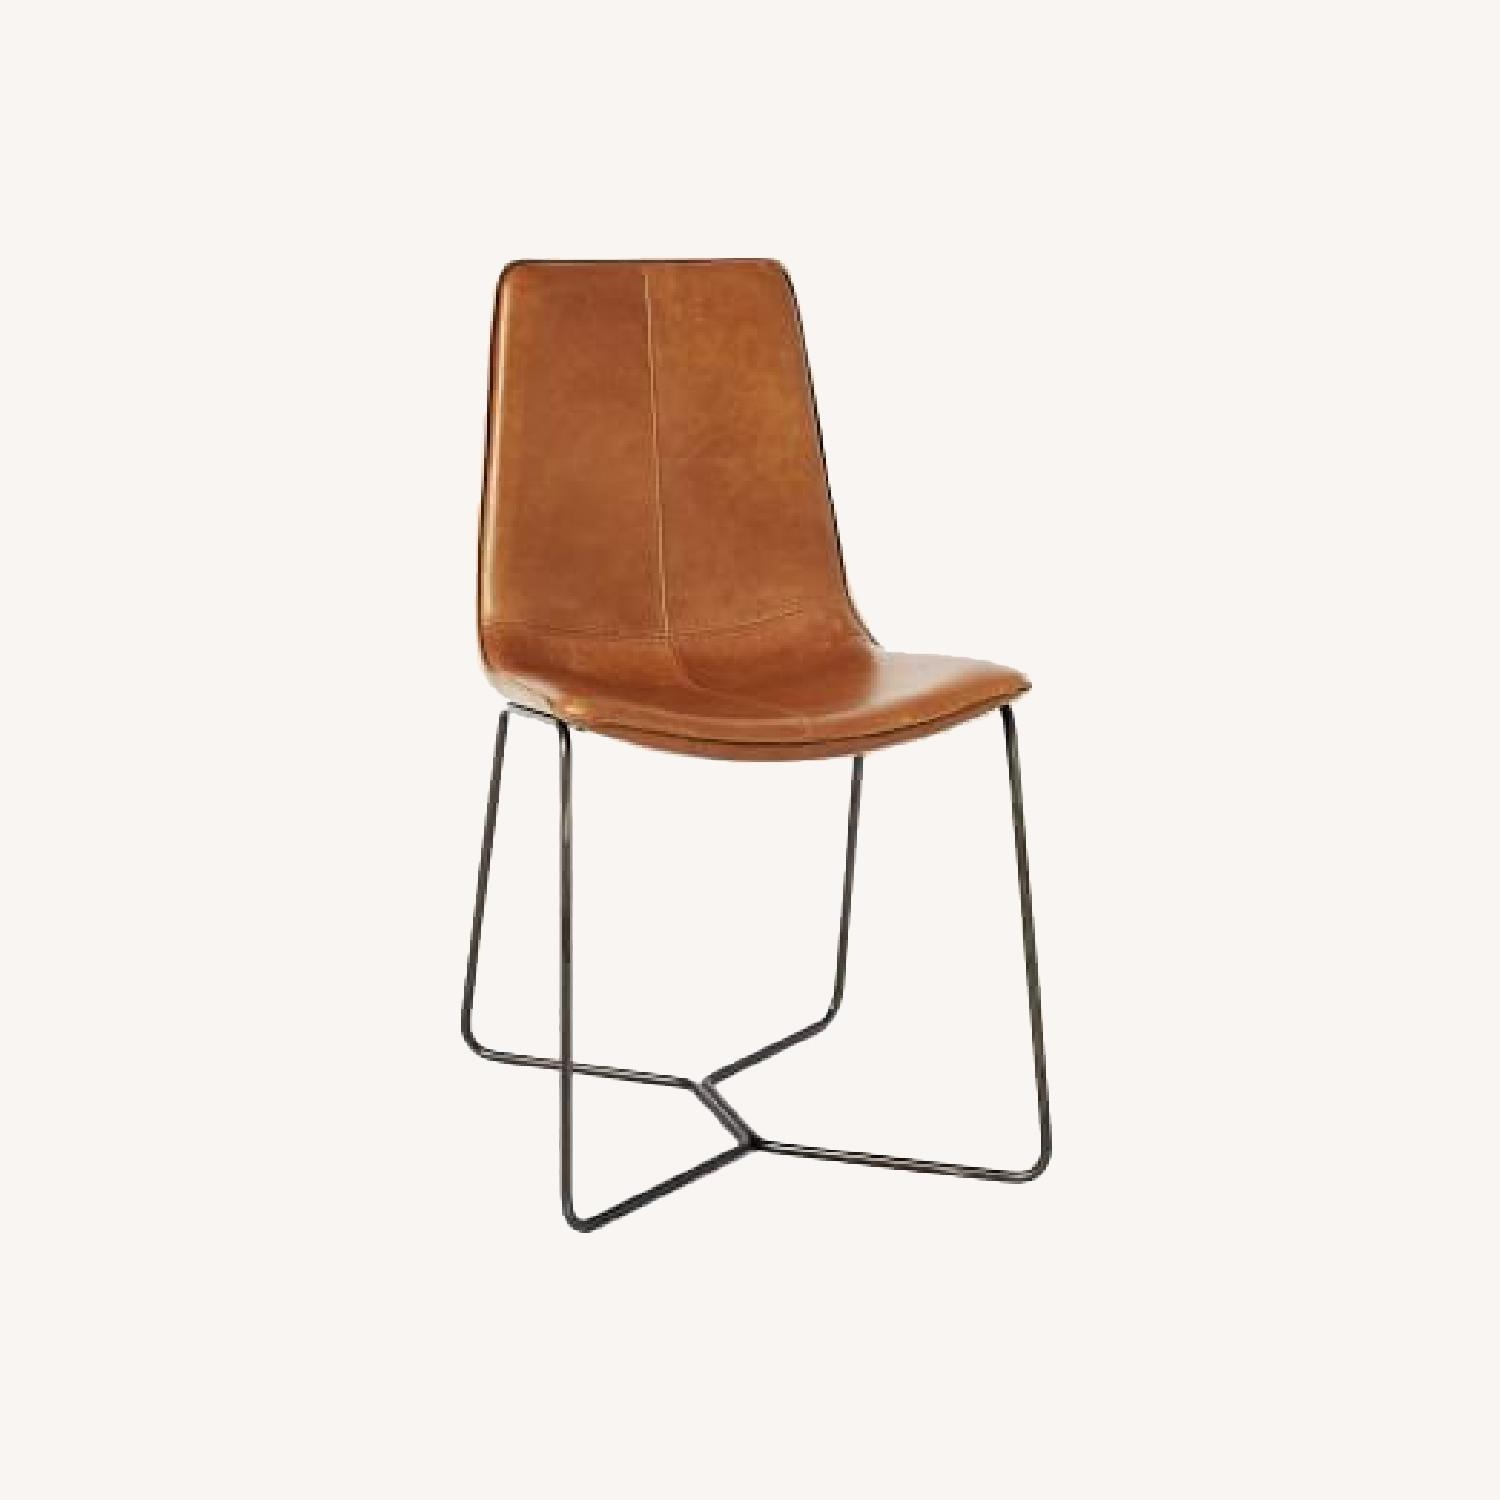 West Elm Slope Leather Dining Chair, set of 2